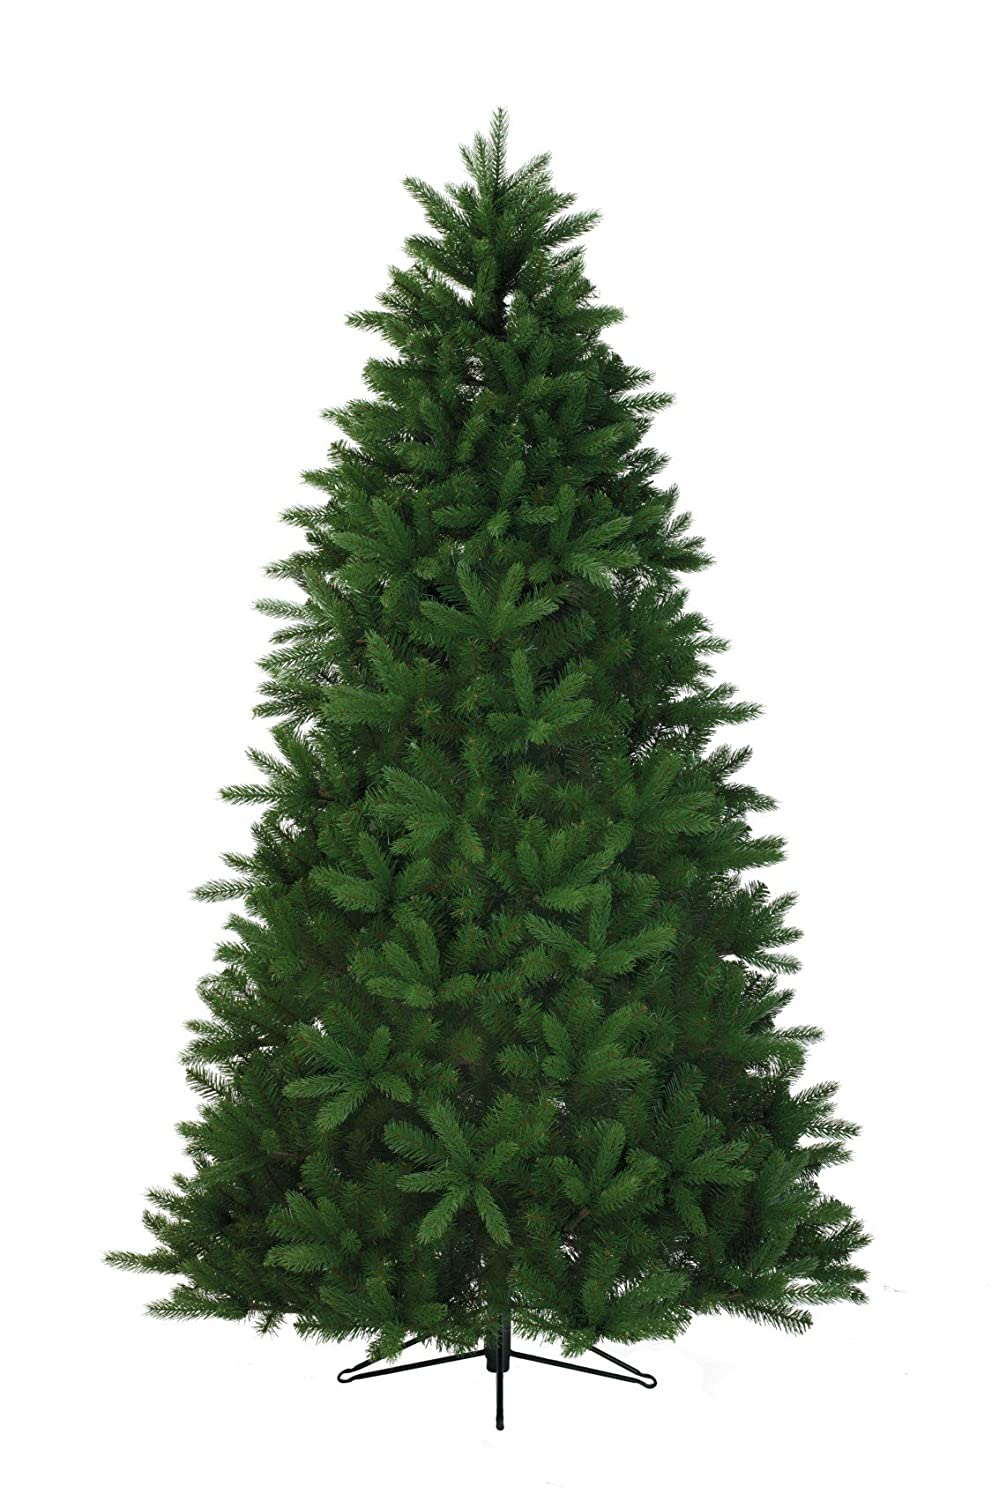 Kaemingk Everlands - 6ft / 180cm Bergen Spruce Artificial Christmas Tree - PVC and PE Mixed Needles with 1143 Hand Crafted Branch Tips 688801